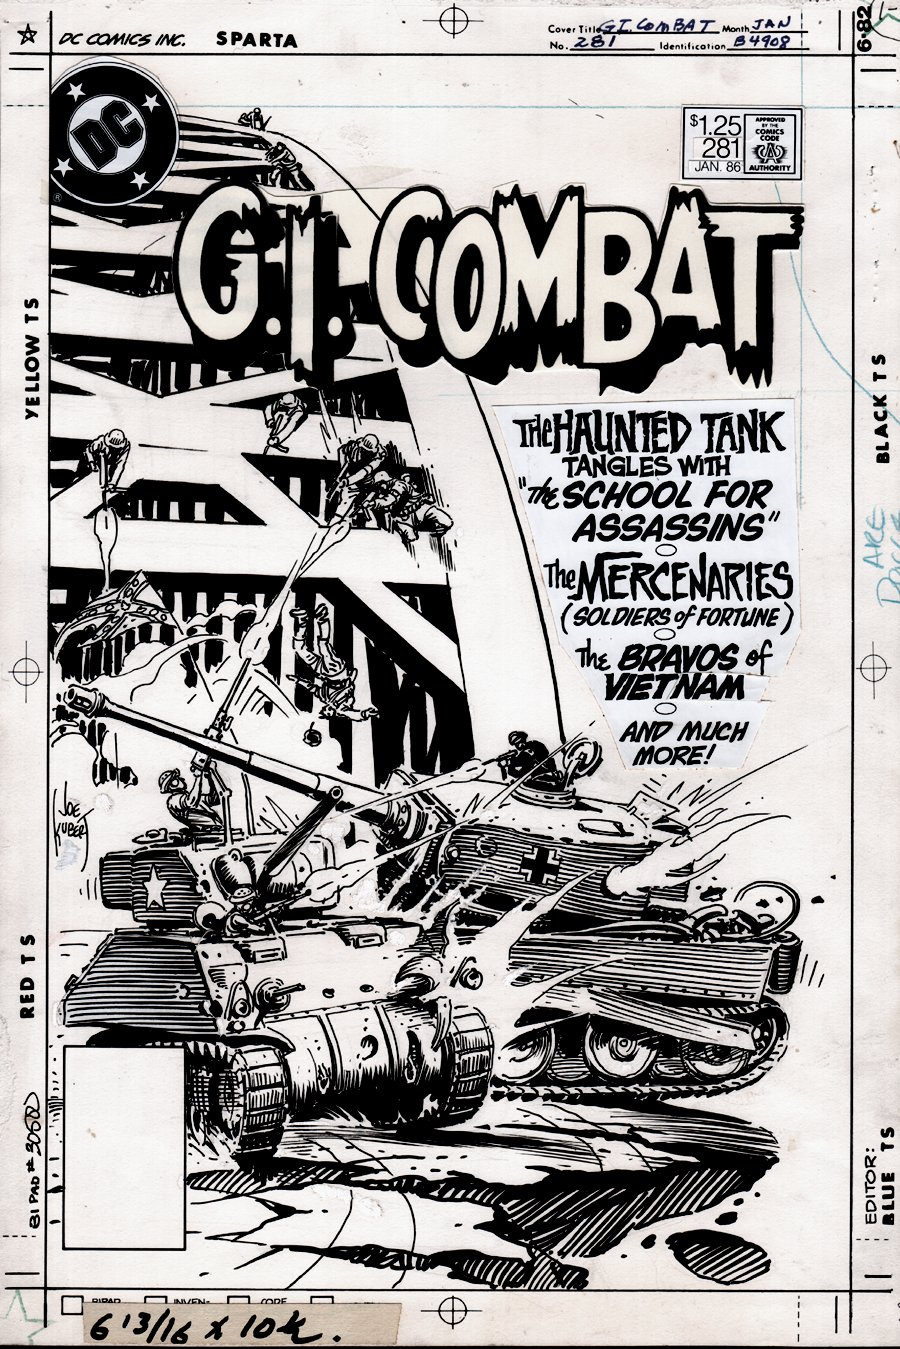 G.I. Combat #281 Cover (HAUNTED TANK!)